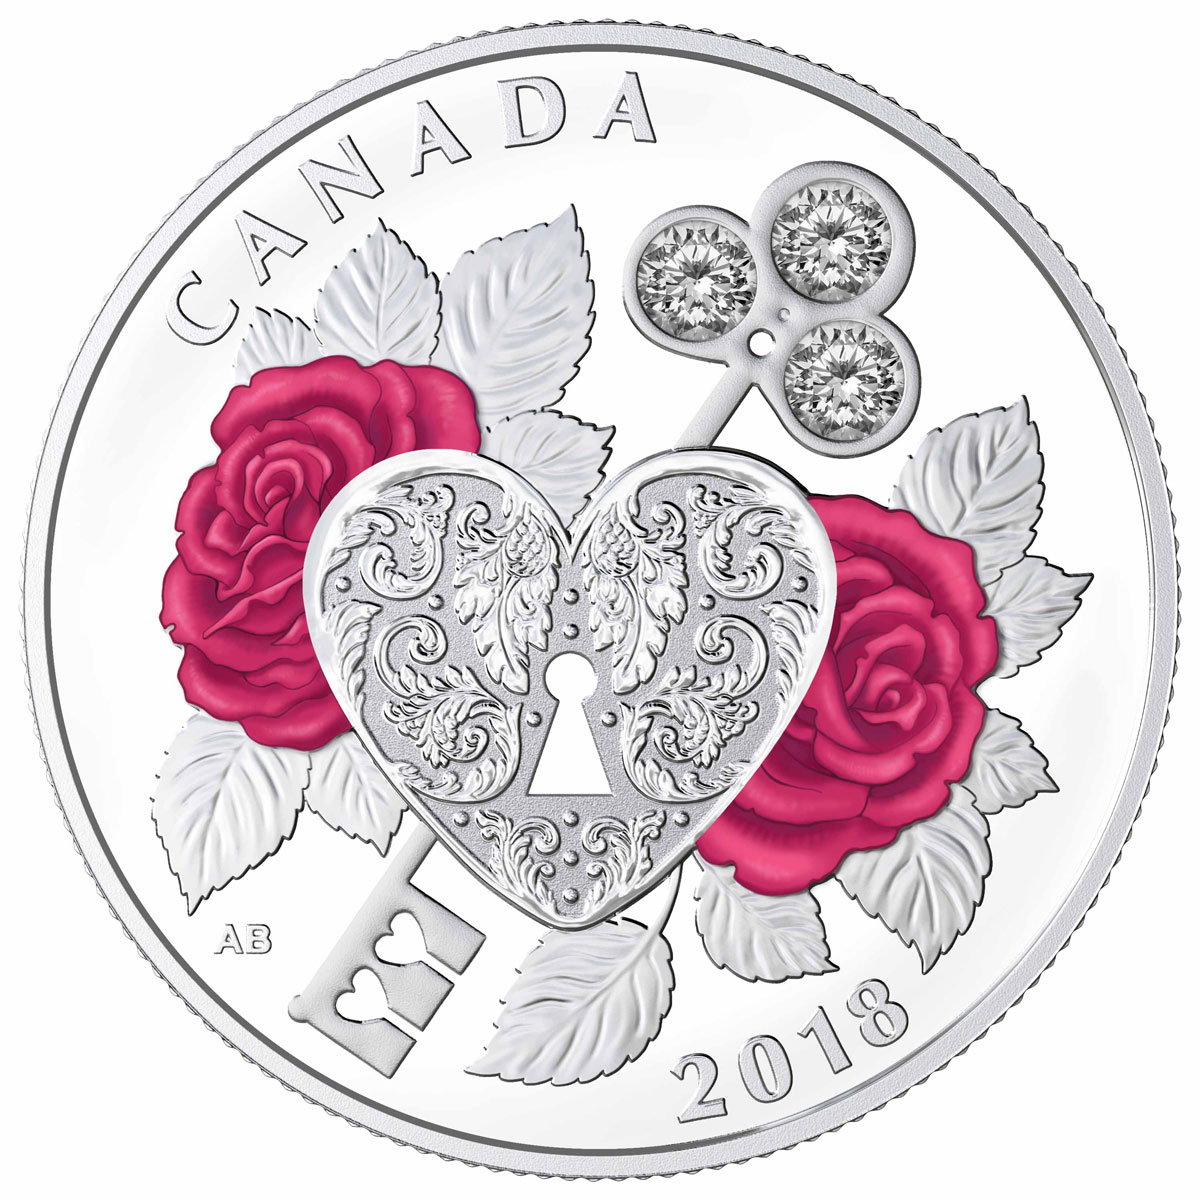 2018 Canada Celebration of Love 1/4 oz Silver Proof $3 Coin with Swarovski Crystals GEM Proof OGP